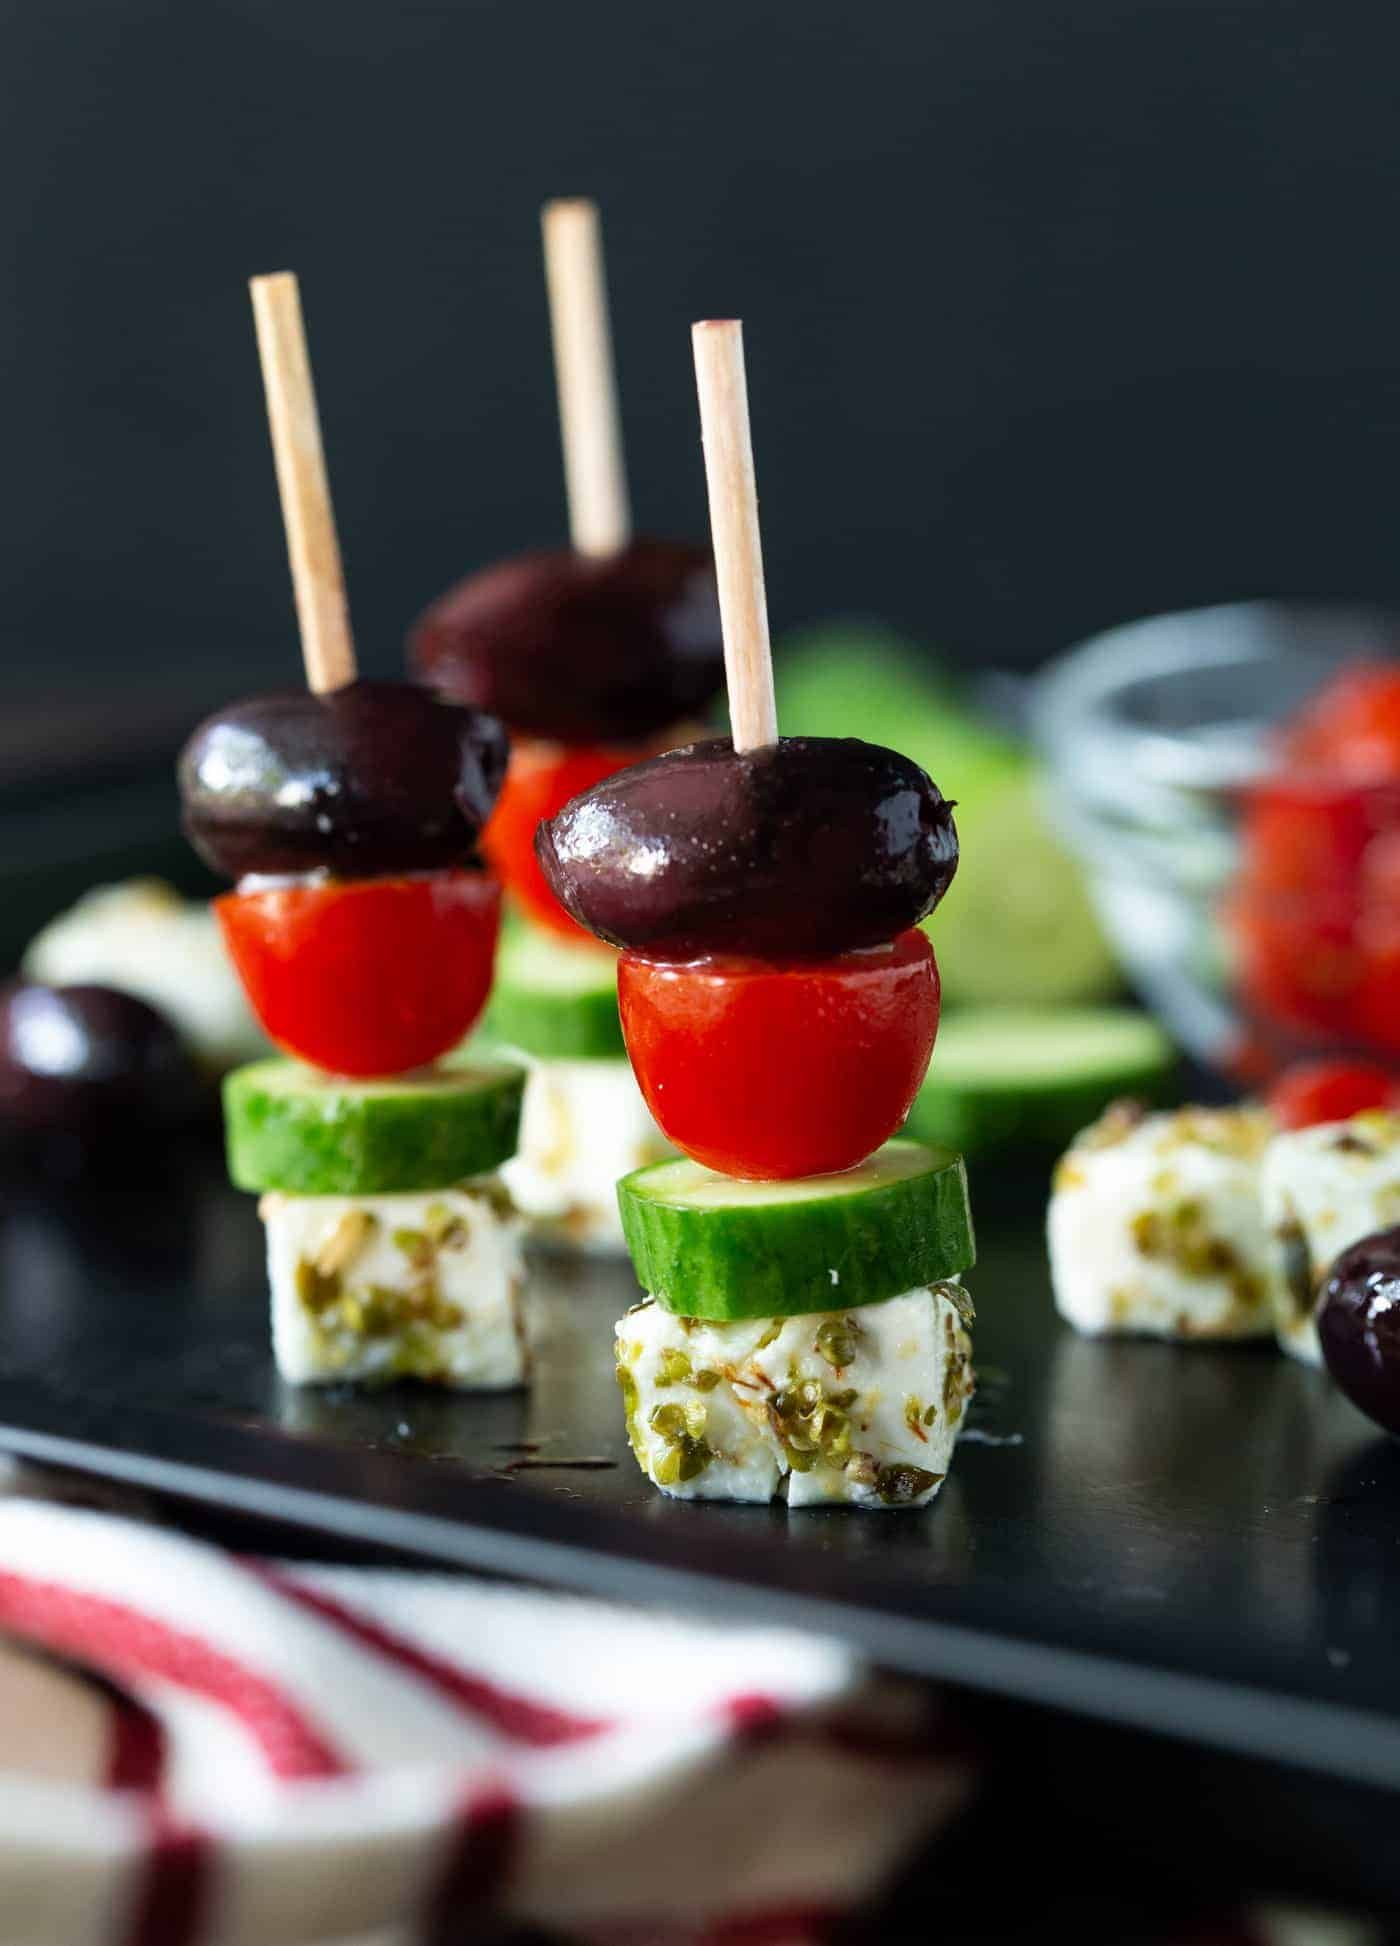 Greek Salad Skewers - Garnish with Lemon #festmad